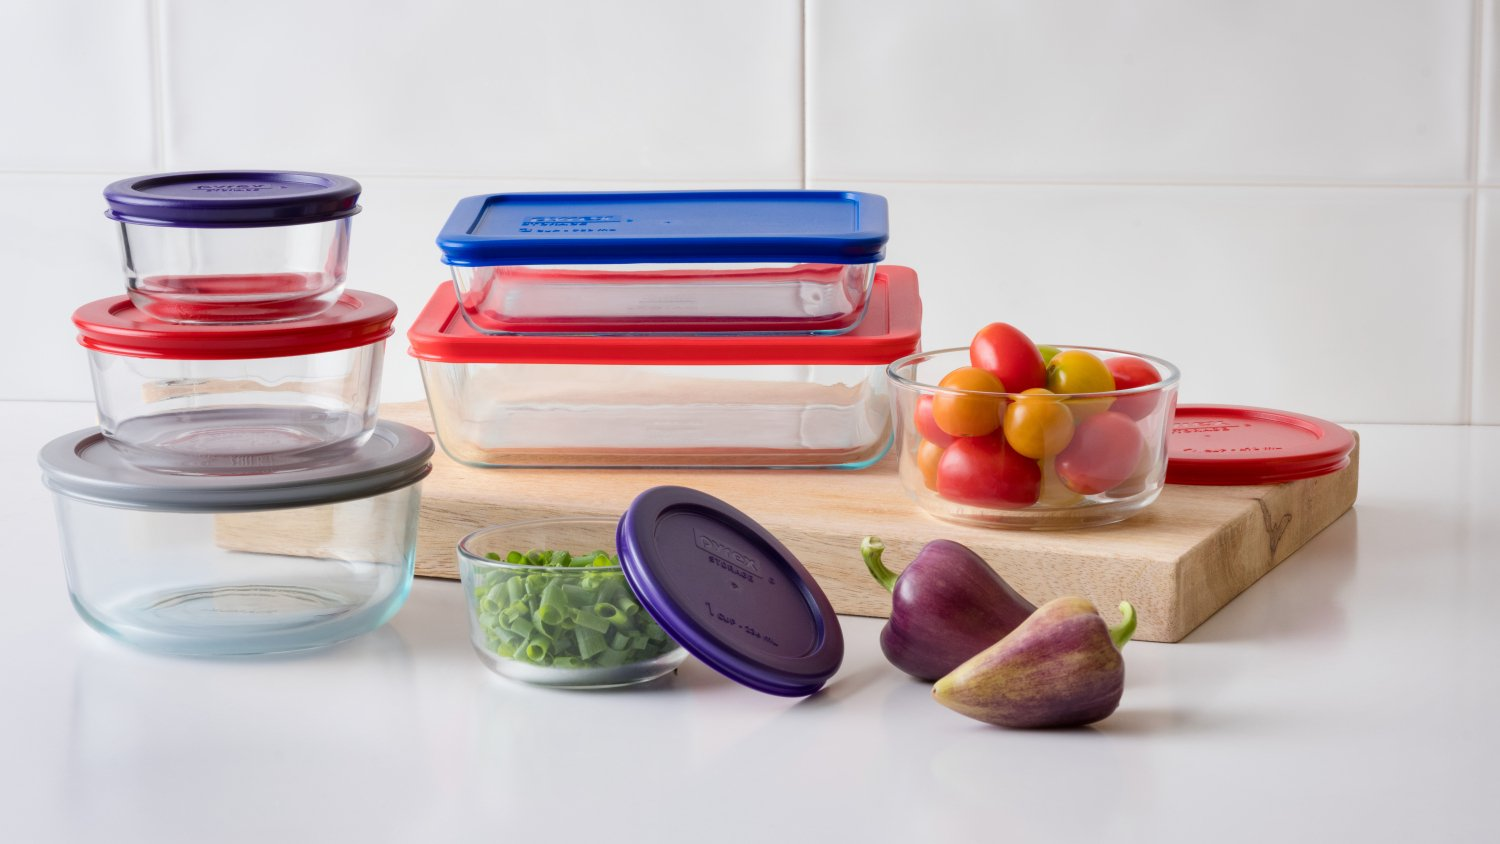 Pyrex Simply Store Glass Bakeware Set, 14 Piece